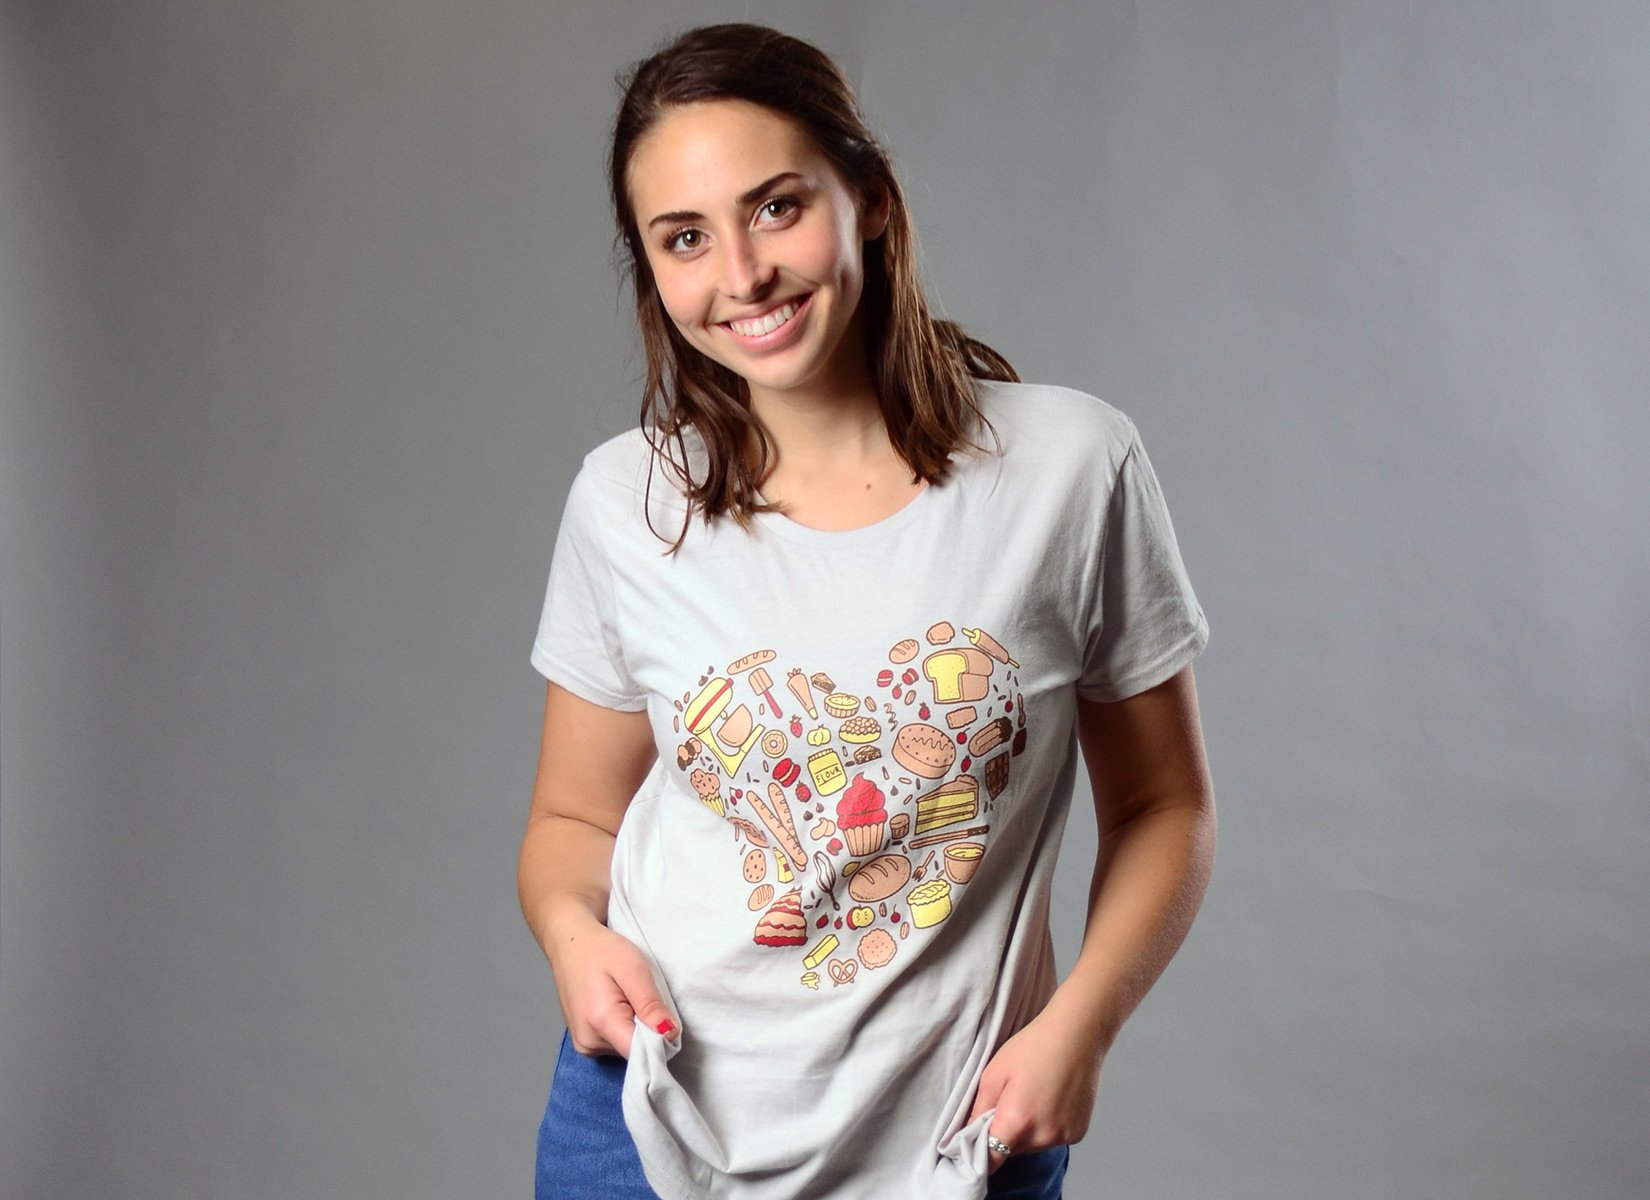 Baking Heart on Womens T-Shirt